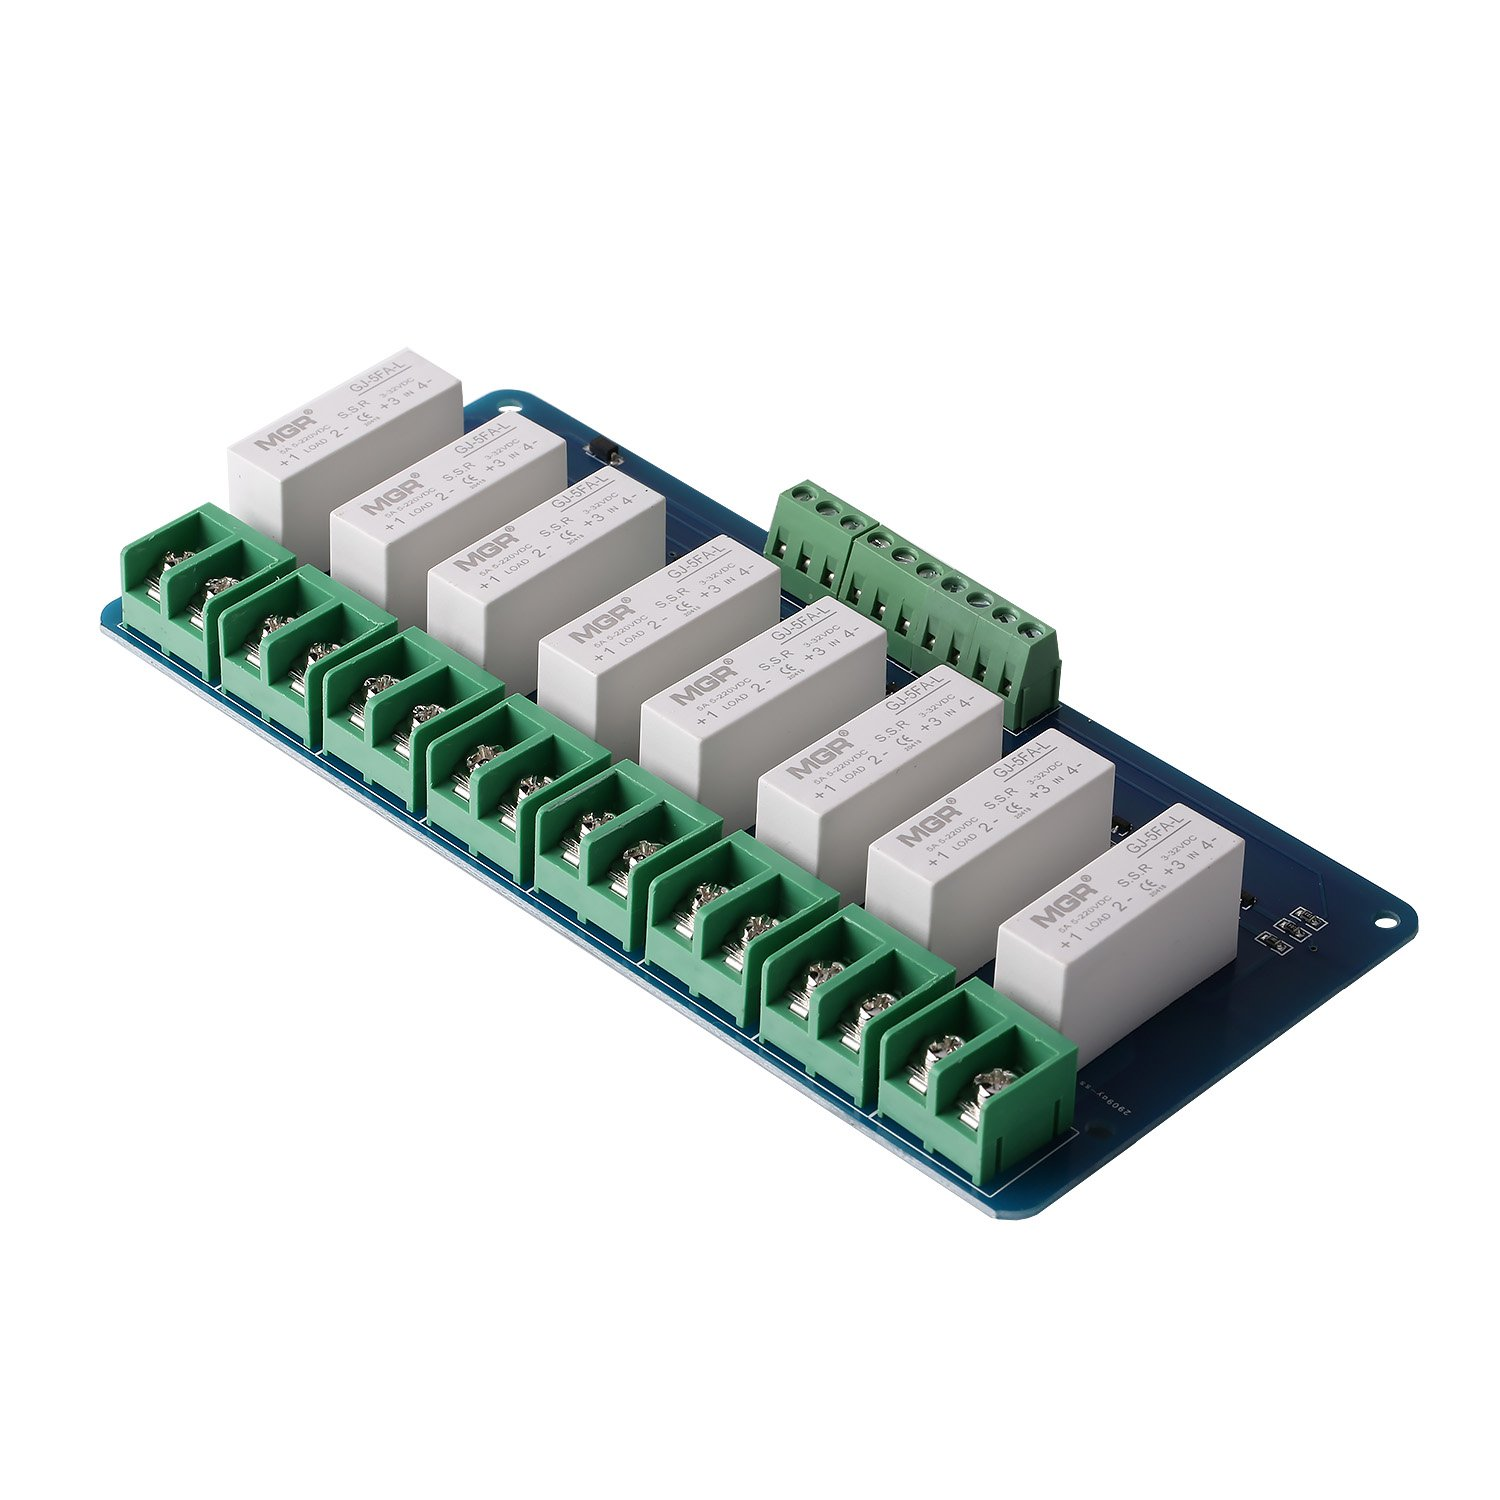 Sainsmart 8 Ch Ssr 5a Dc 5v 220v Solid State Relay Board Computers Accessories